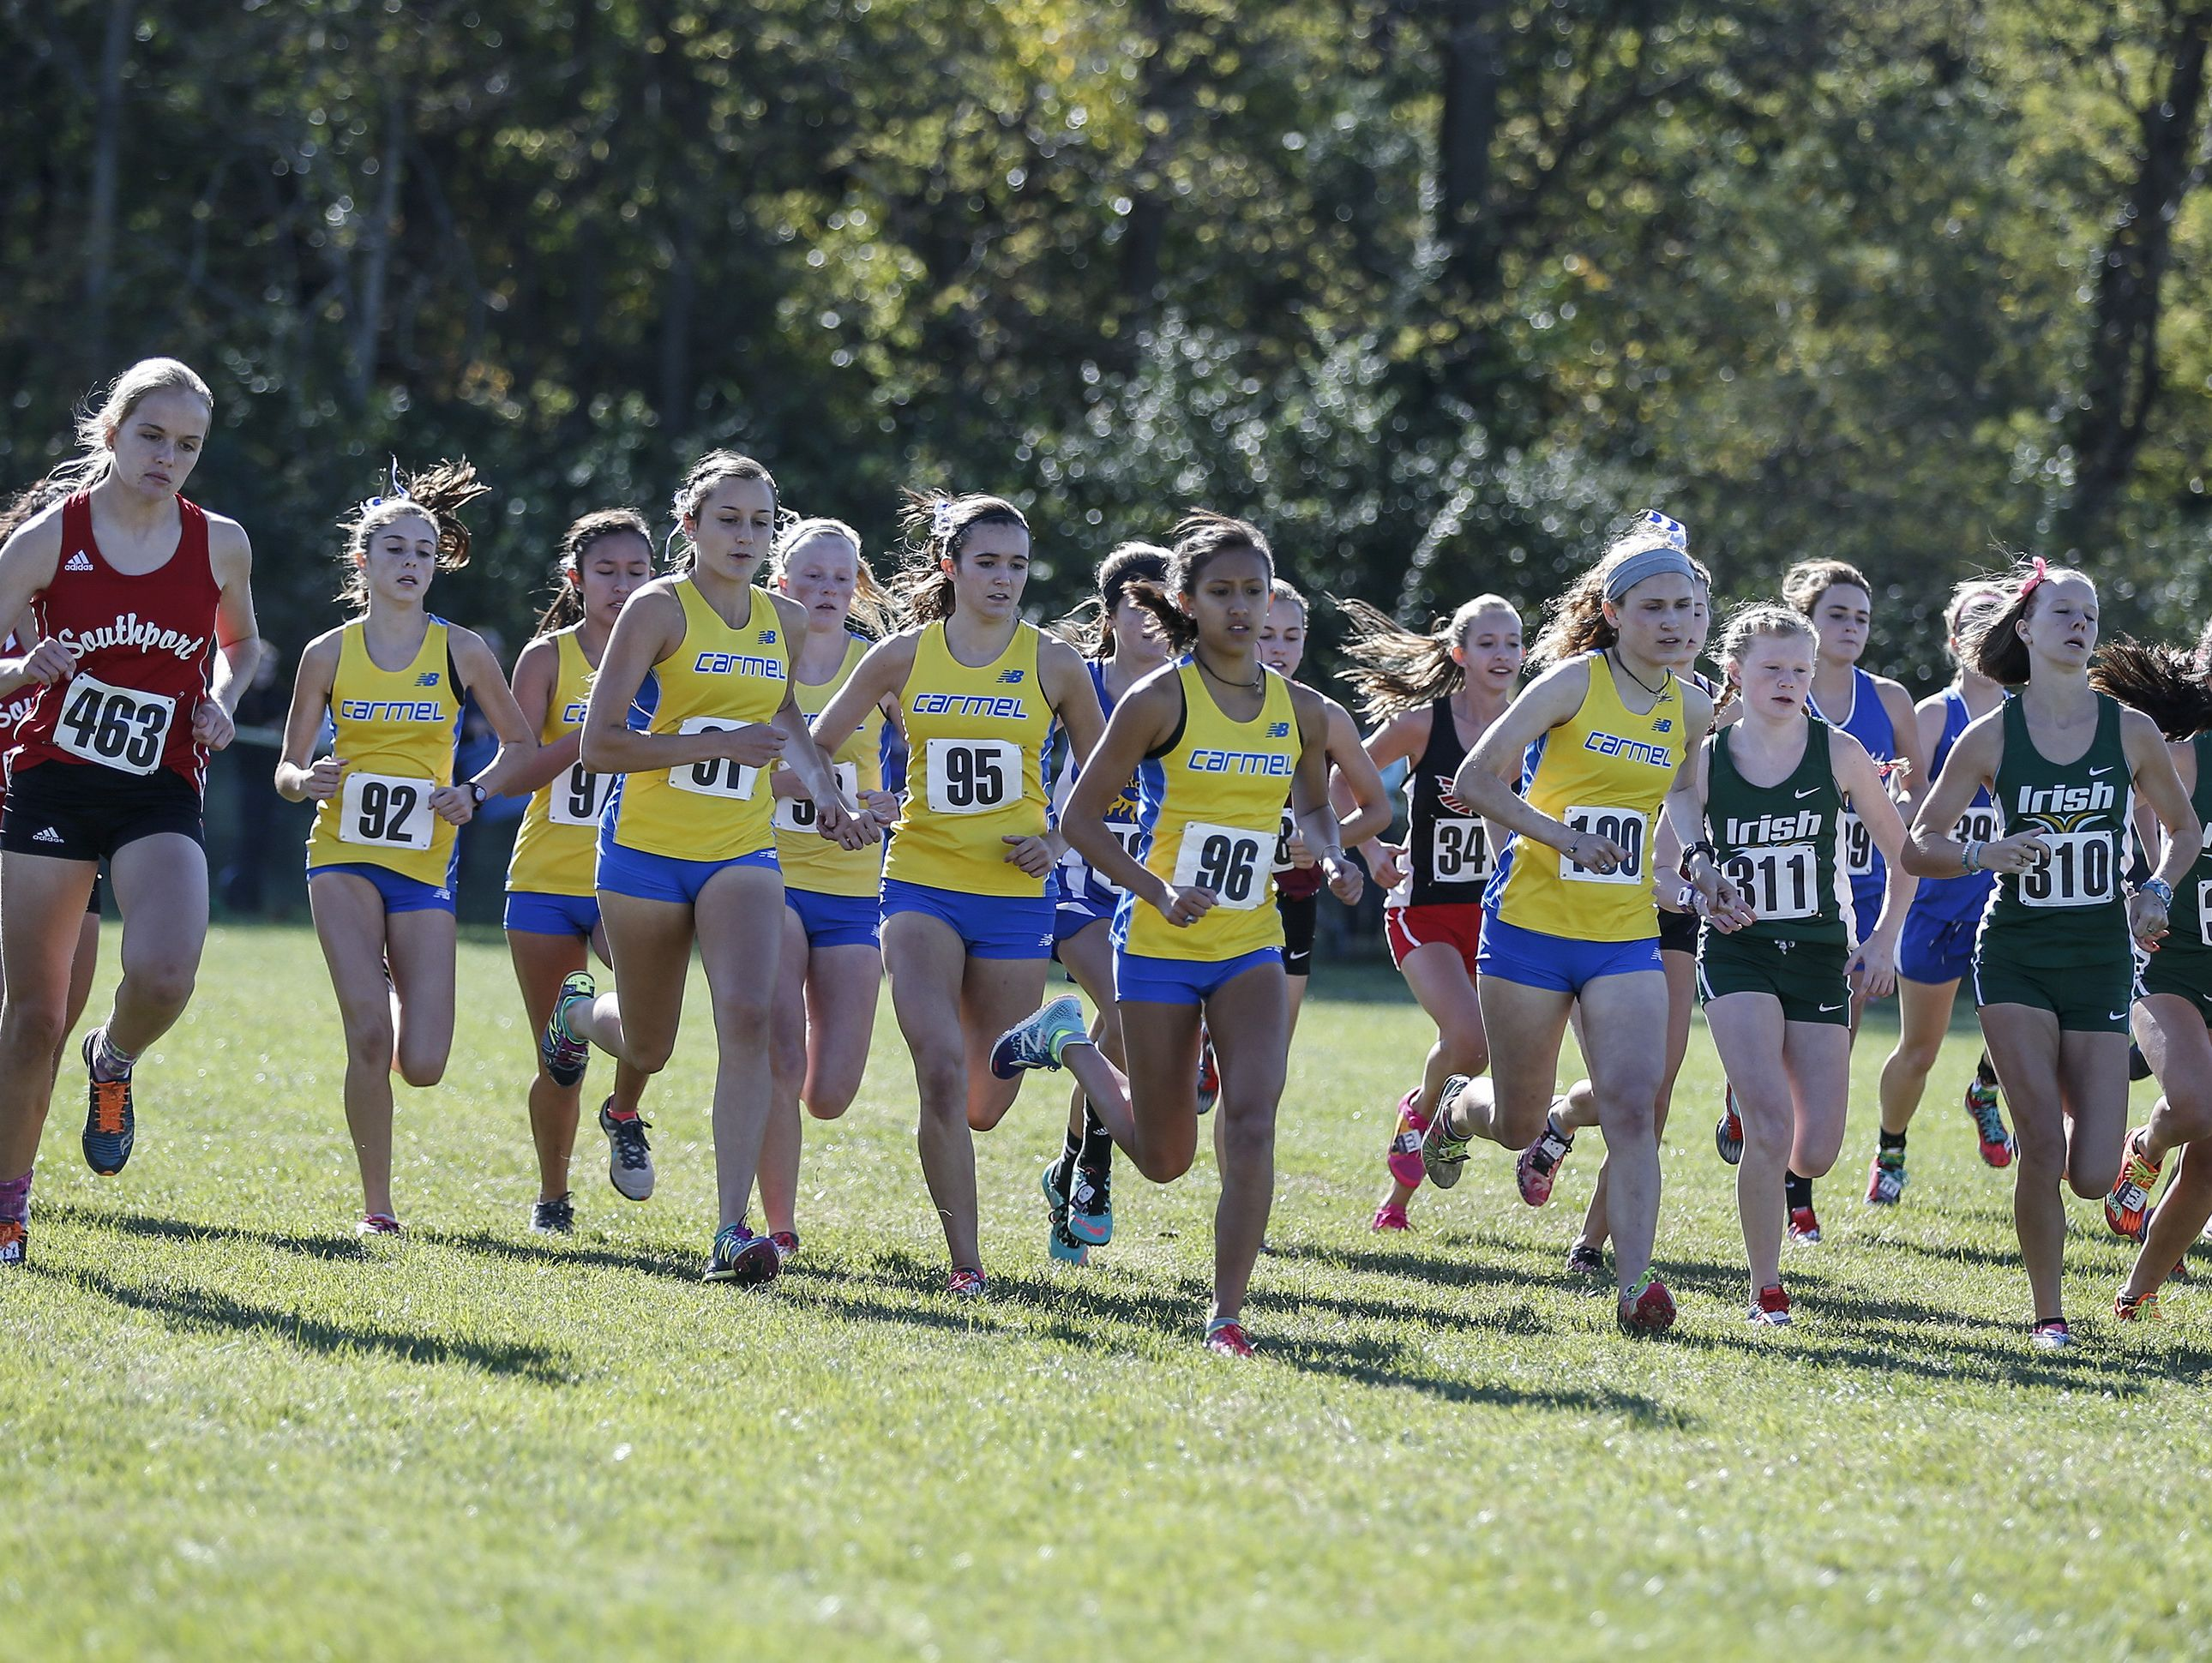 Carmel's girls led the pack in Saturday's Shelbyville Semistate at Blue River Park.